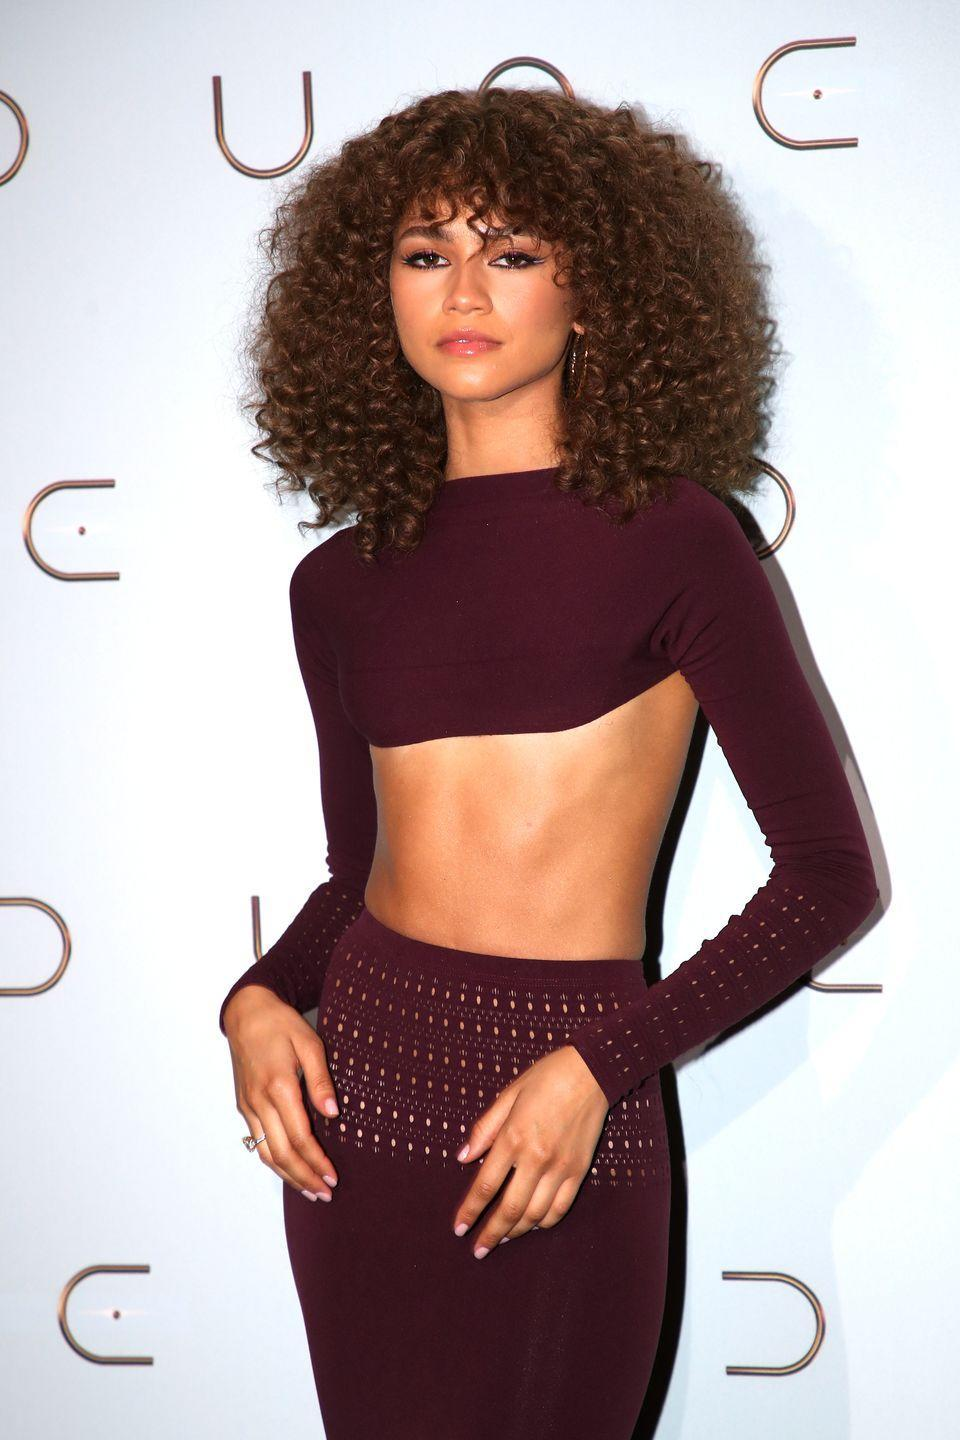 <p>Zendaya swapped her slicked back wet look hair from her previous red carpet appearance for a full head of luscious curls including a fringe. The Dune actor completed her curls with two tone winged eyeliner and her signature statement brows.</p>